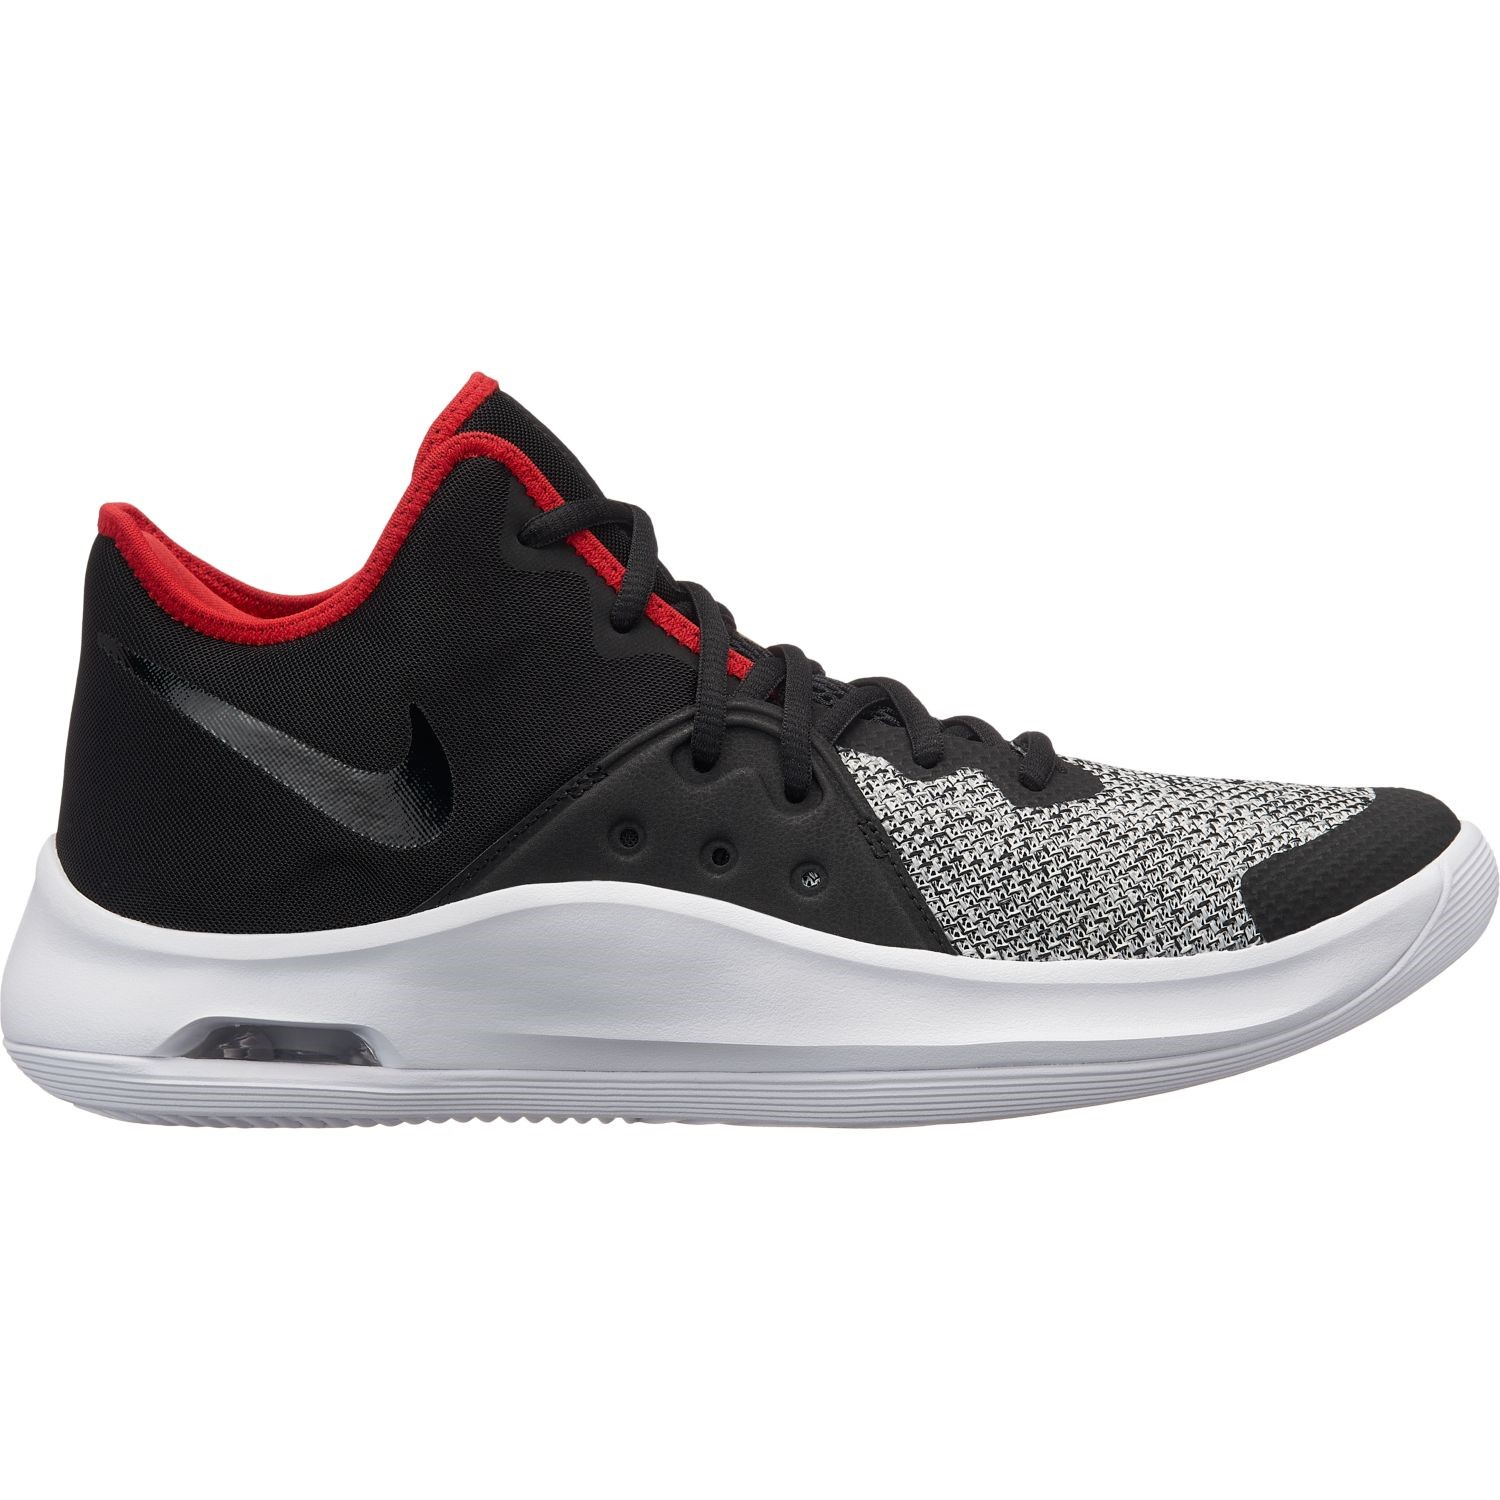 58e48ca4cf70 Nike Air Versatile III - Mens Basketball Shoes - Black White Red ...